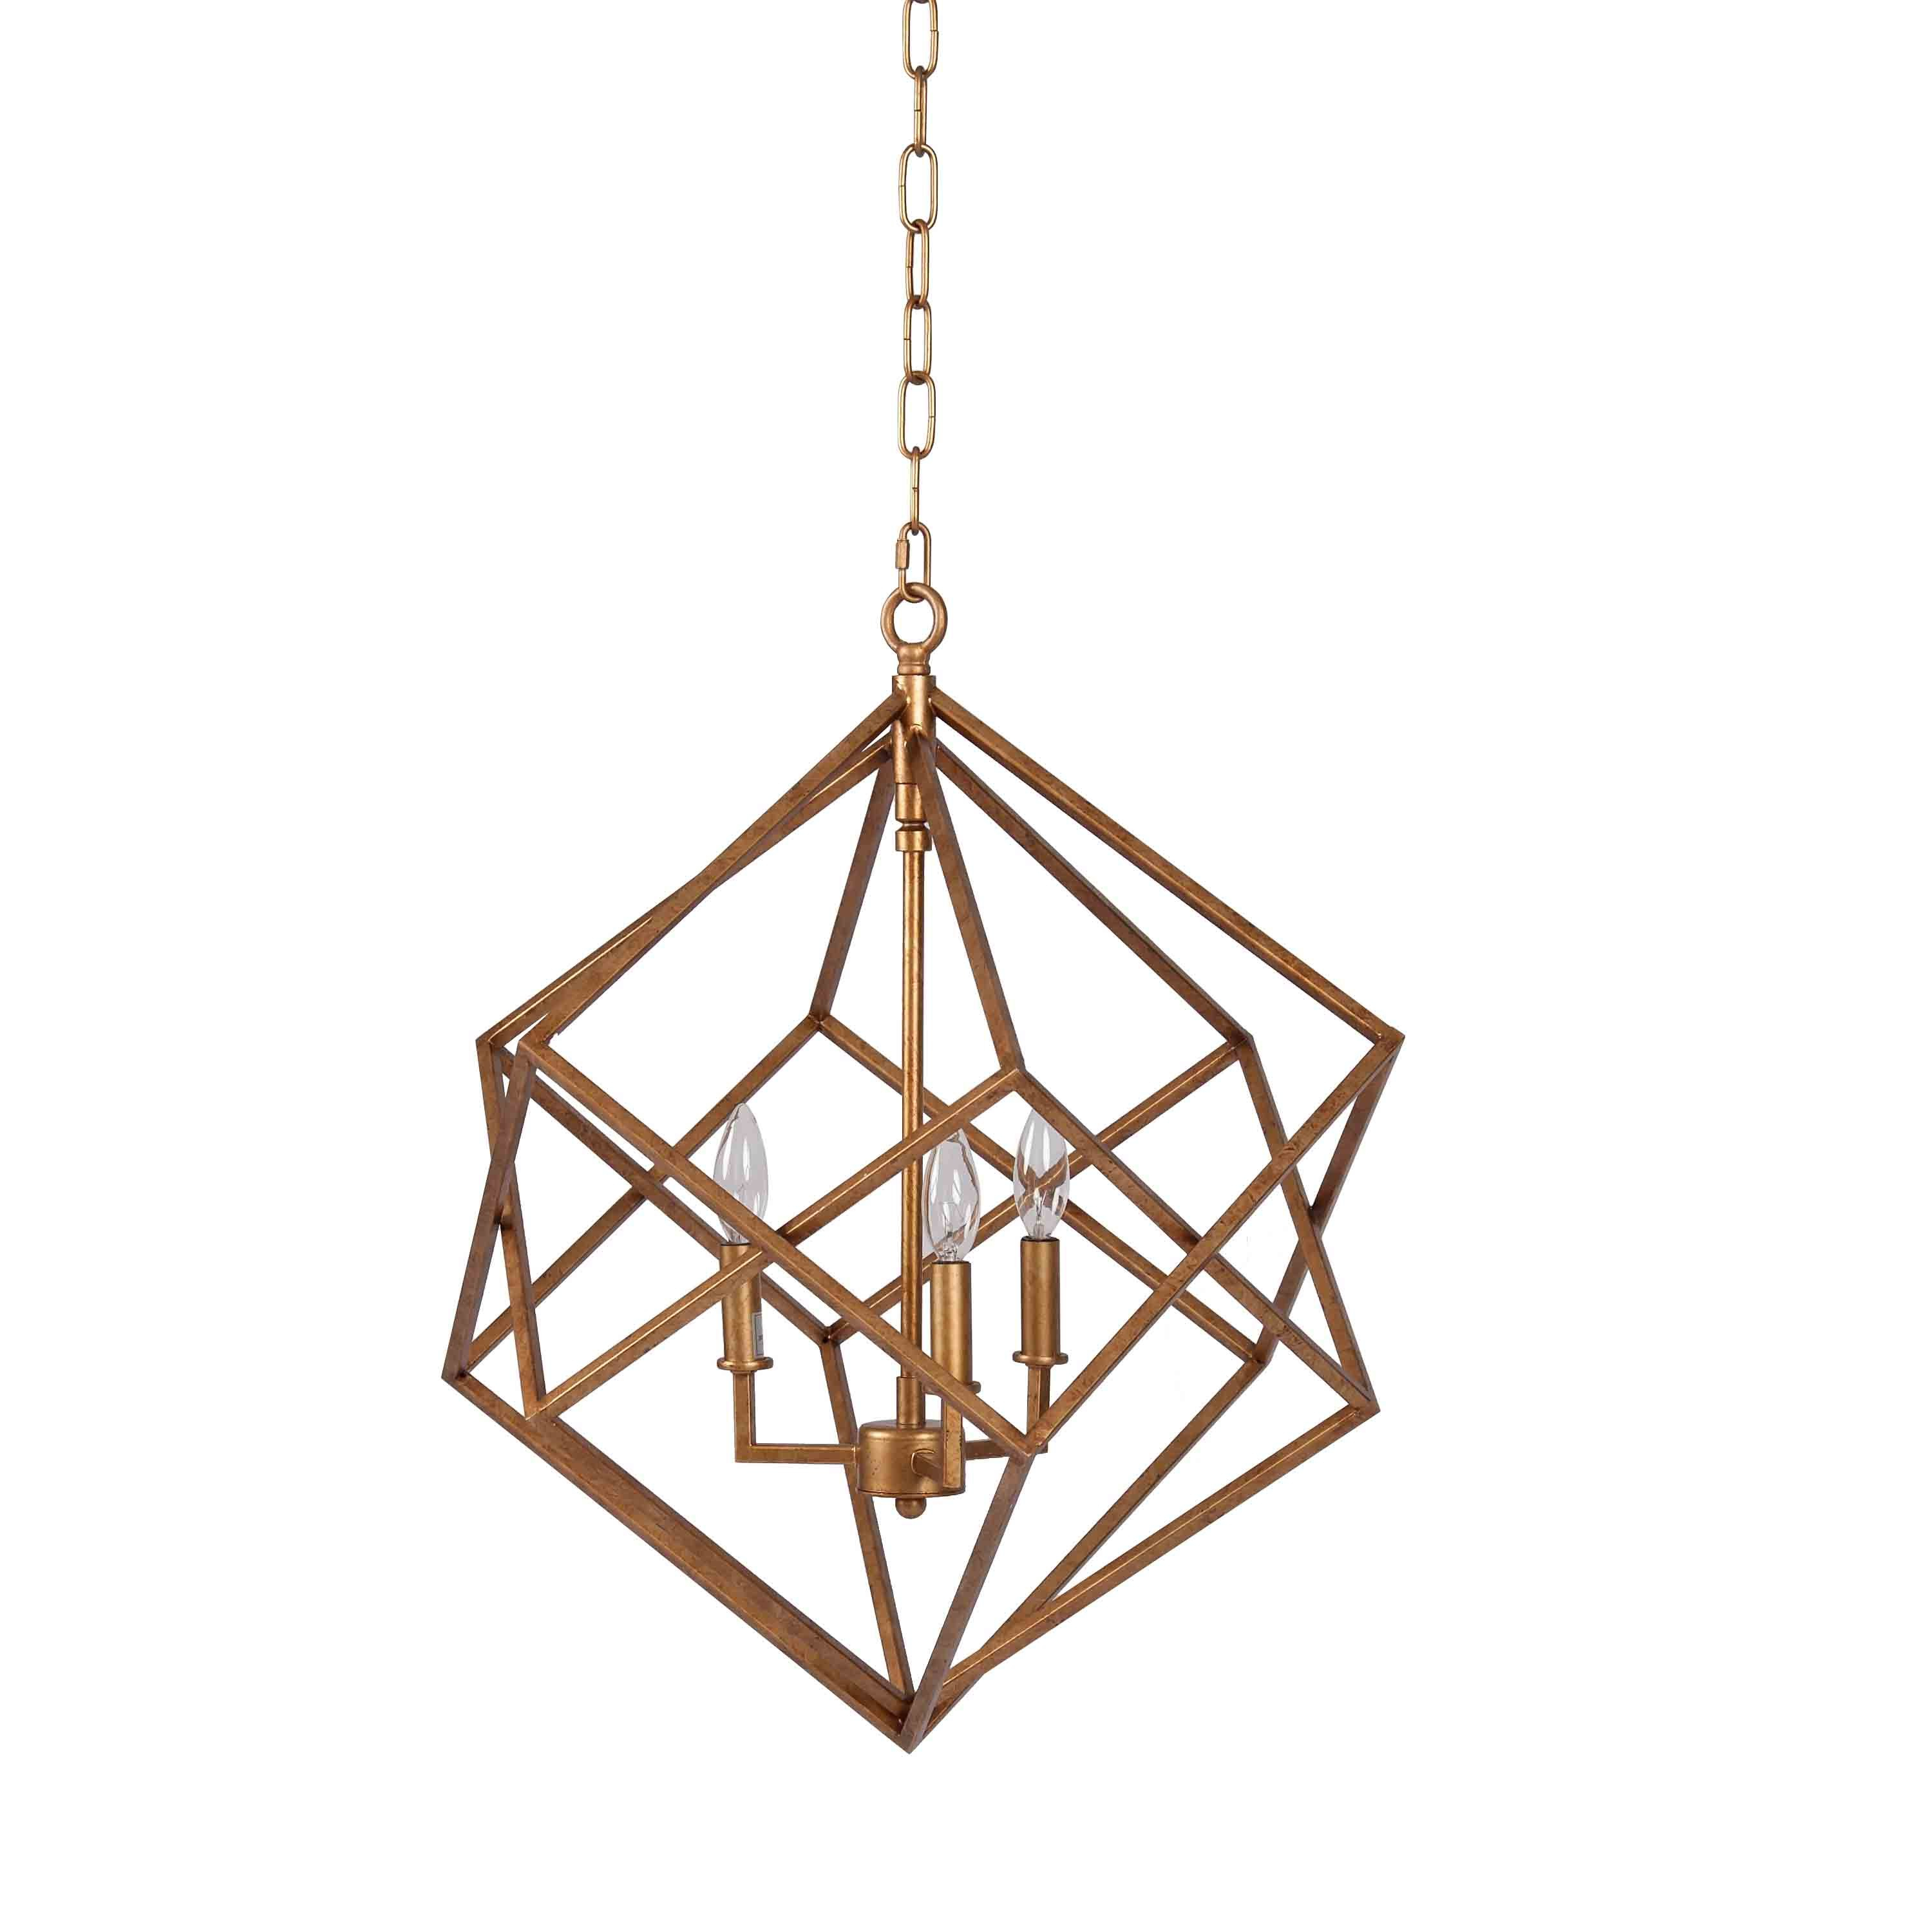 Widely Used Hydetown 1 Light Single Geometric Pendants Throughout Ojas Geometric 3 Light Geometric Chandelier (View 18 of 25)